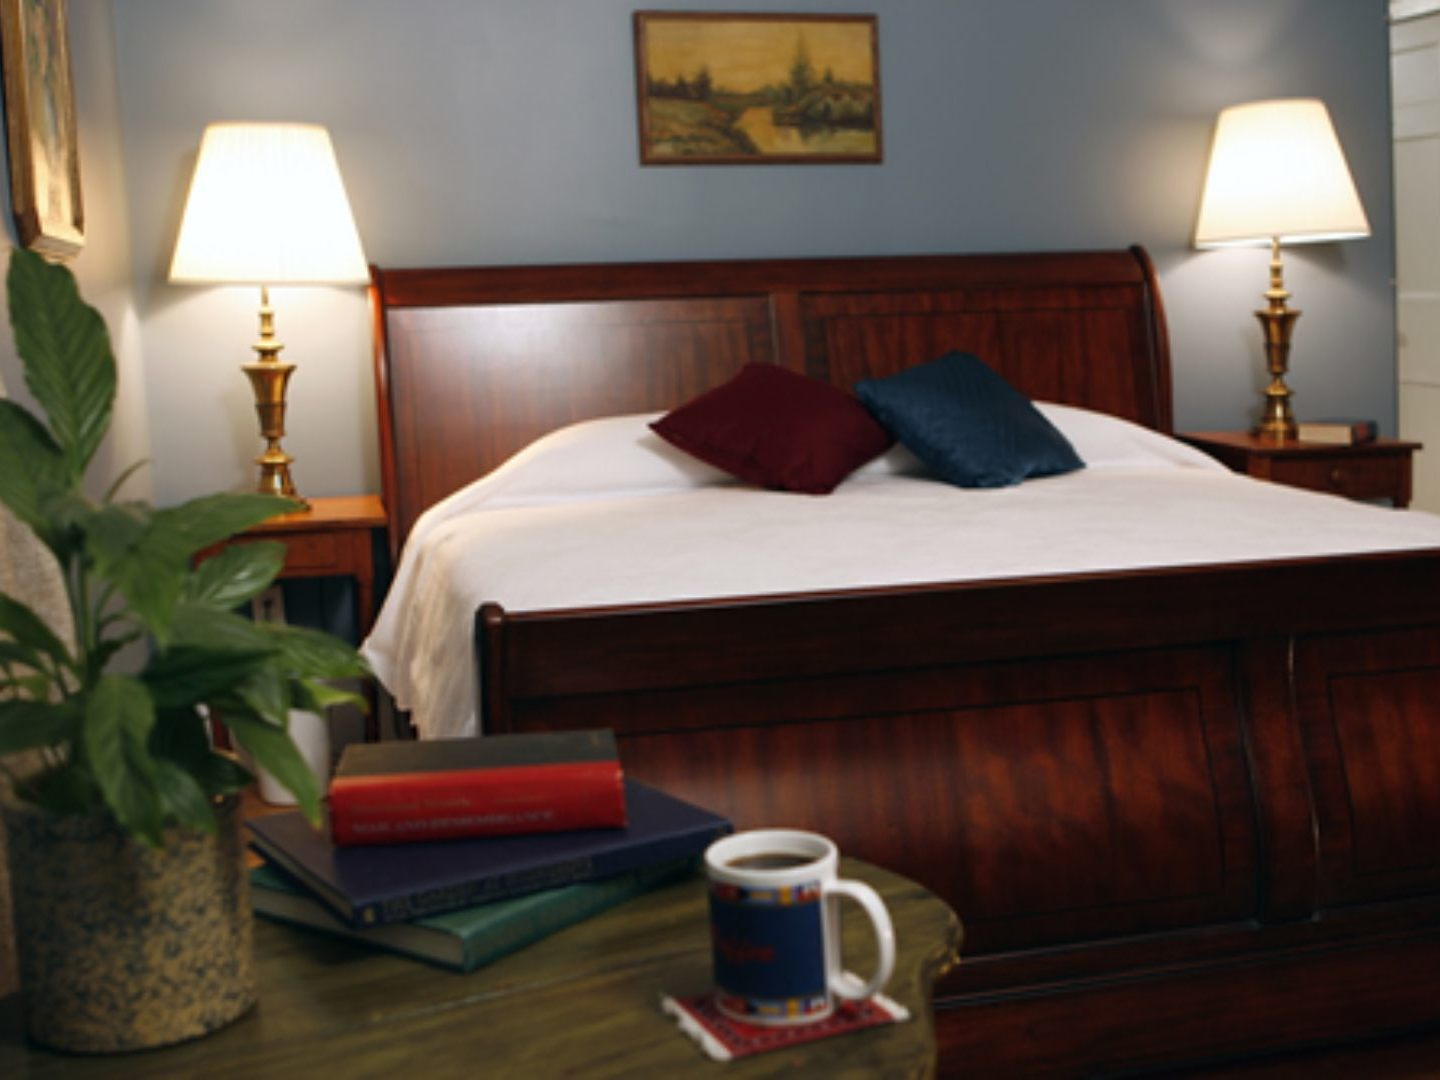 A large bed in a hotel room at Temple Hill Bed & Breakfast.